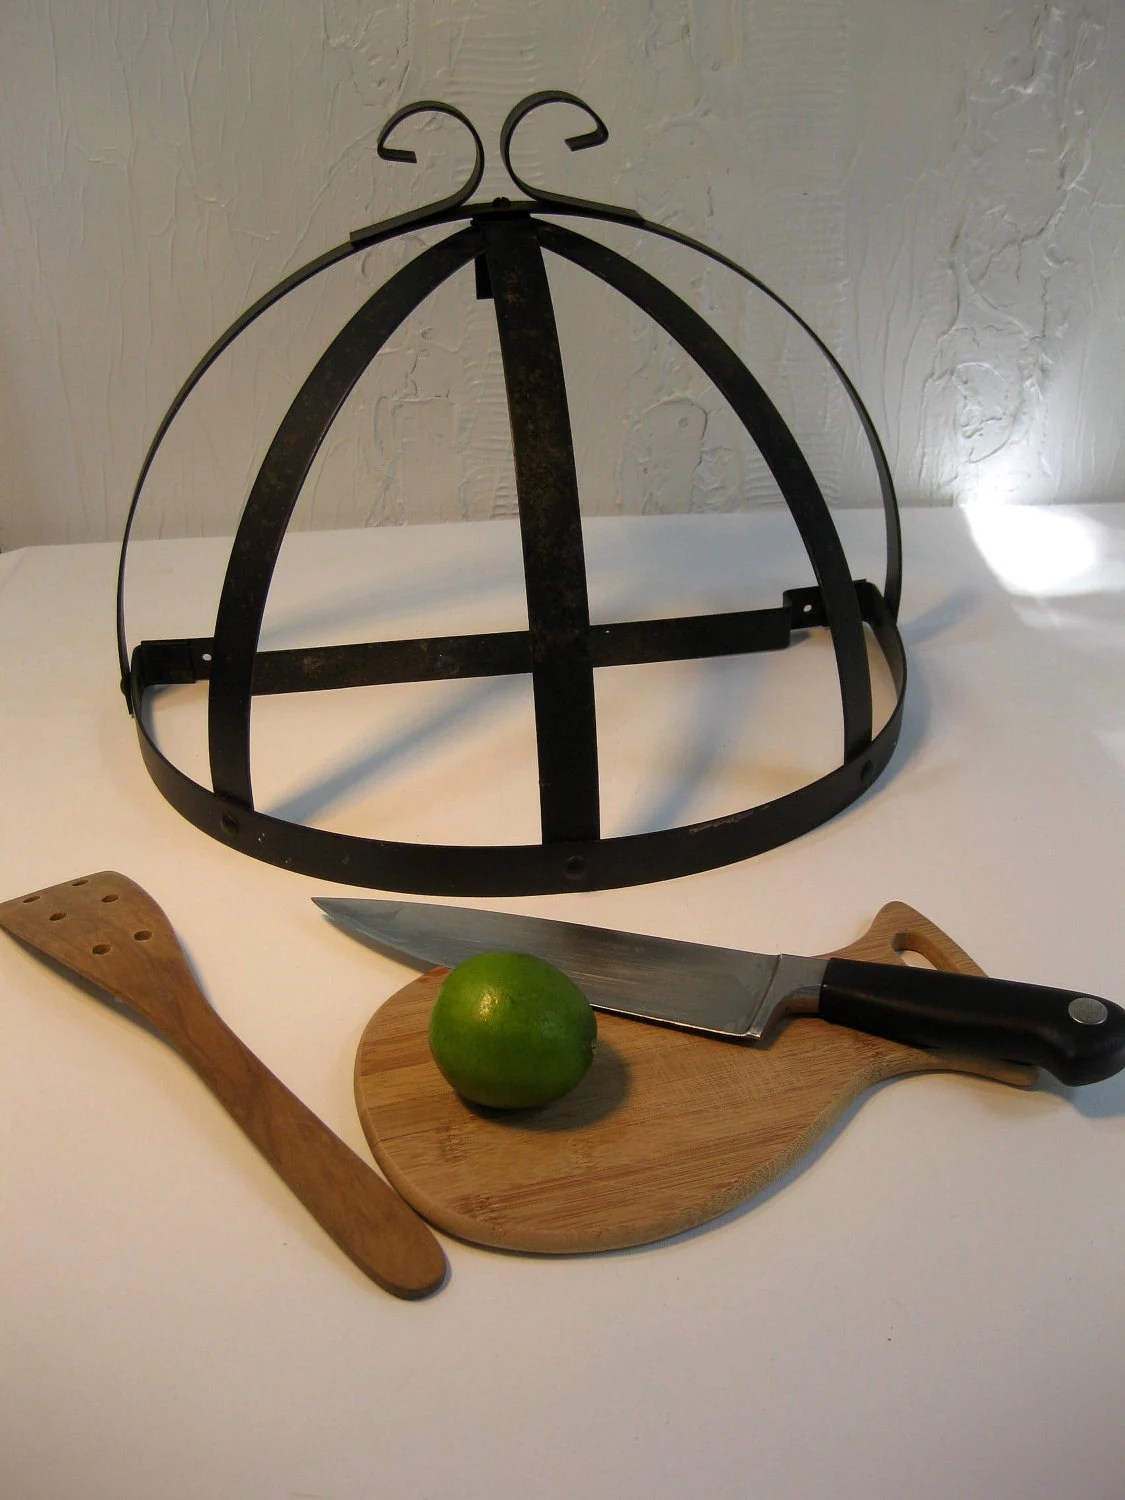 Vintage Wrought Iron Pot Rack or Decorative Wall by